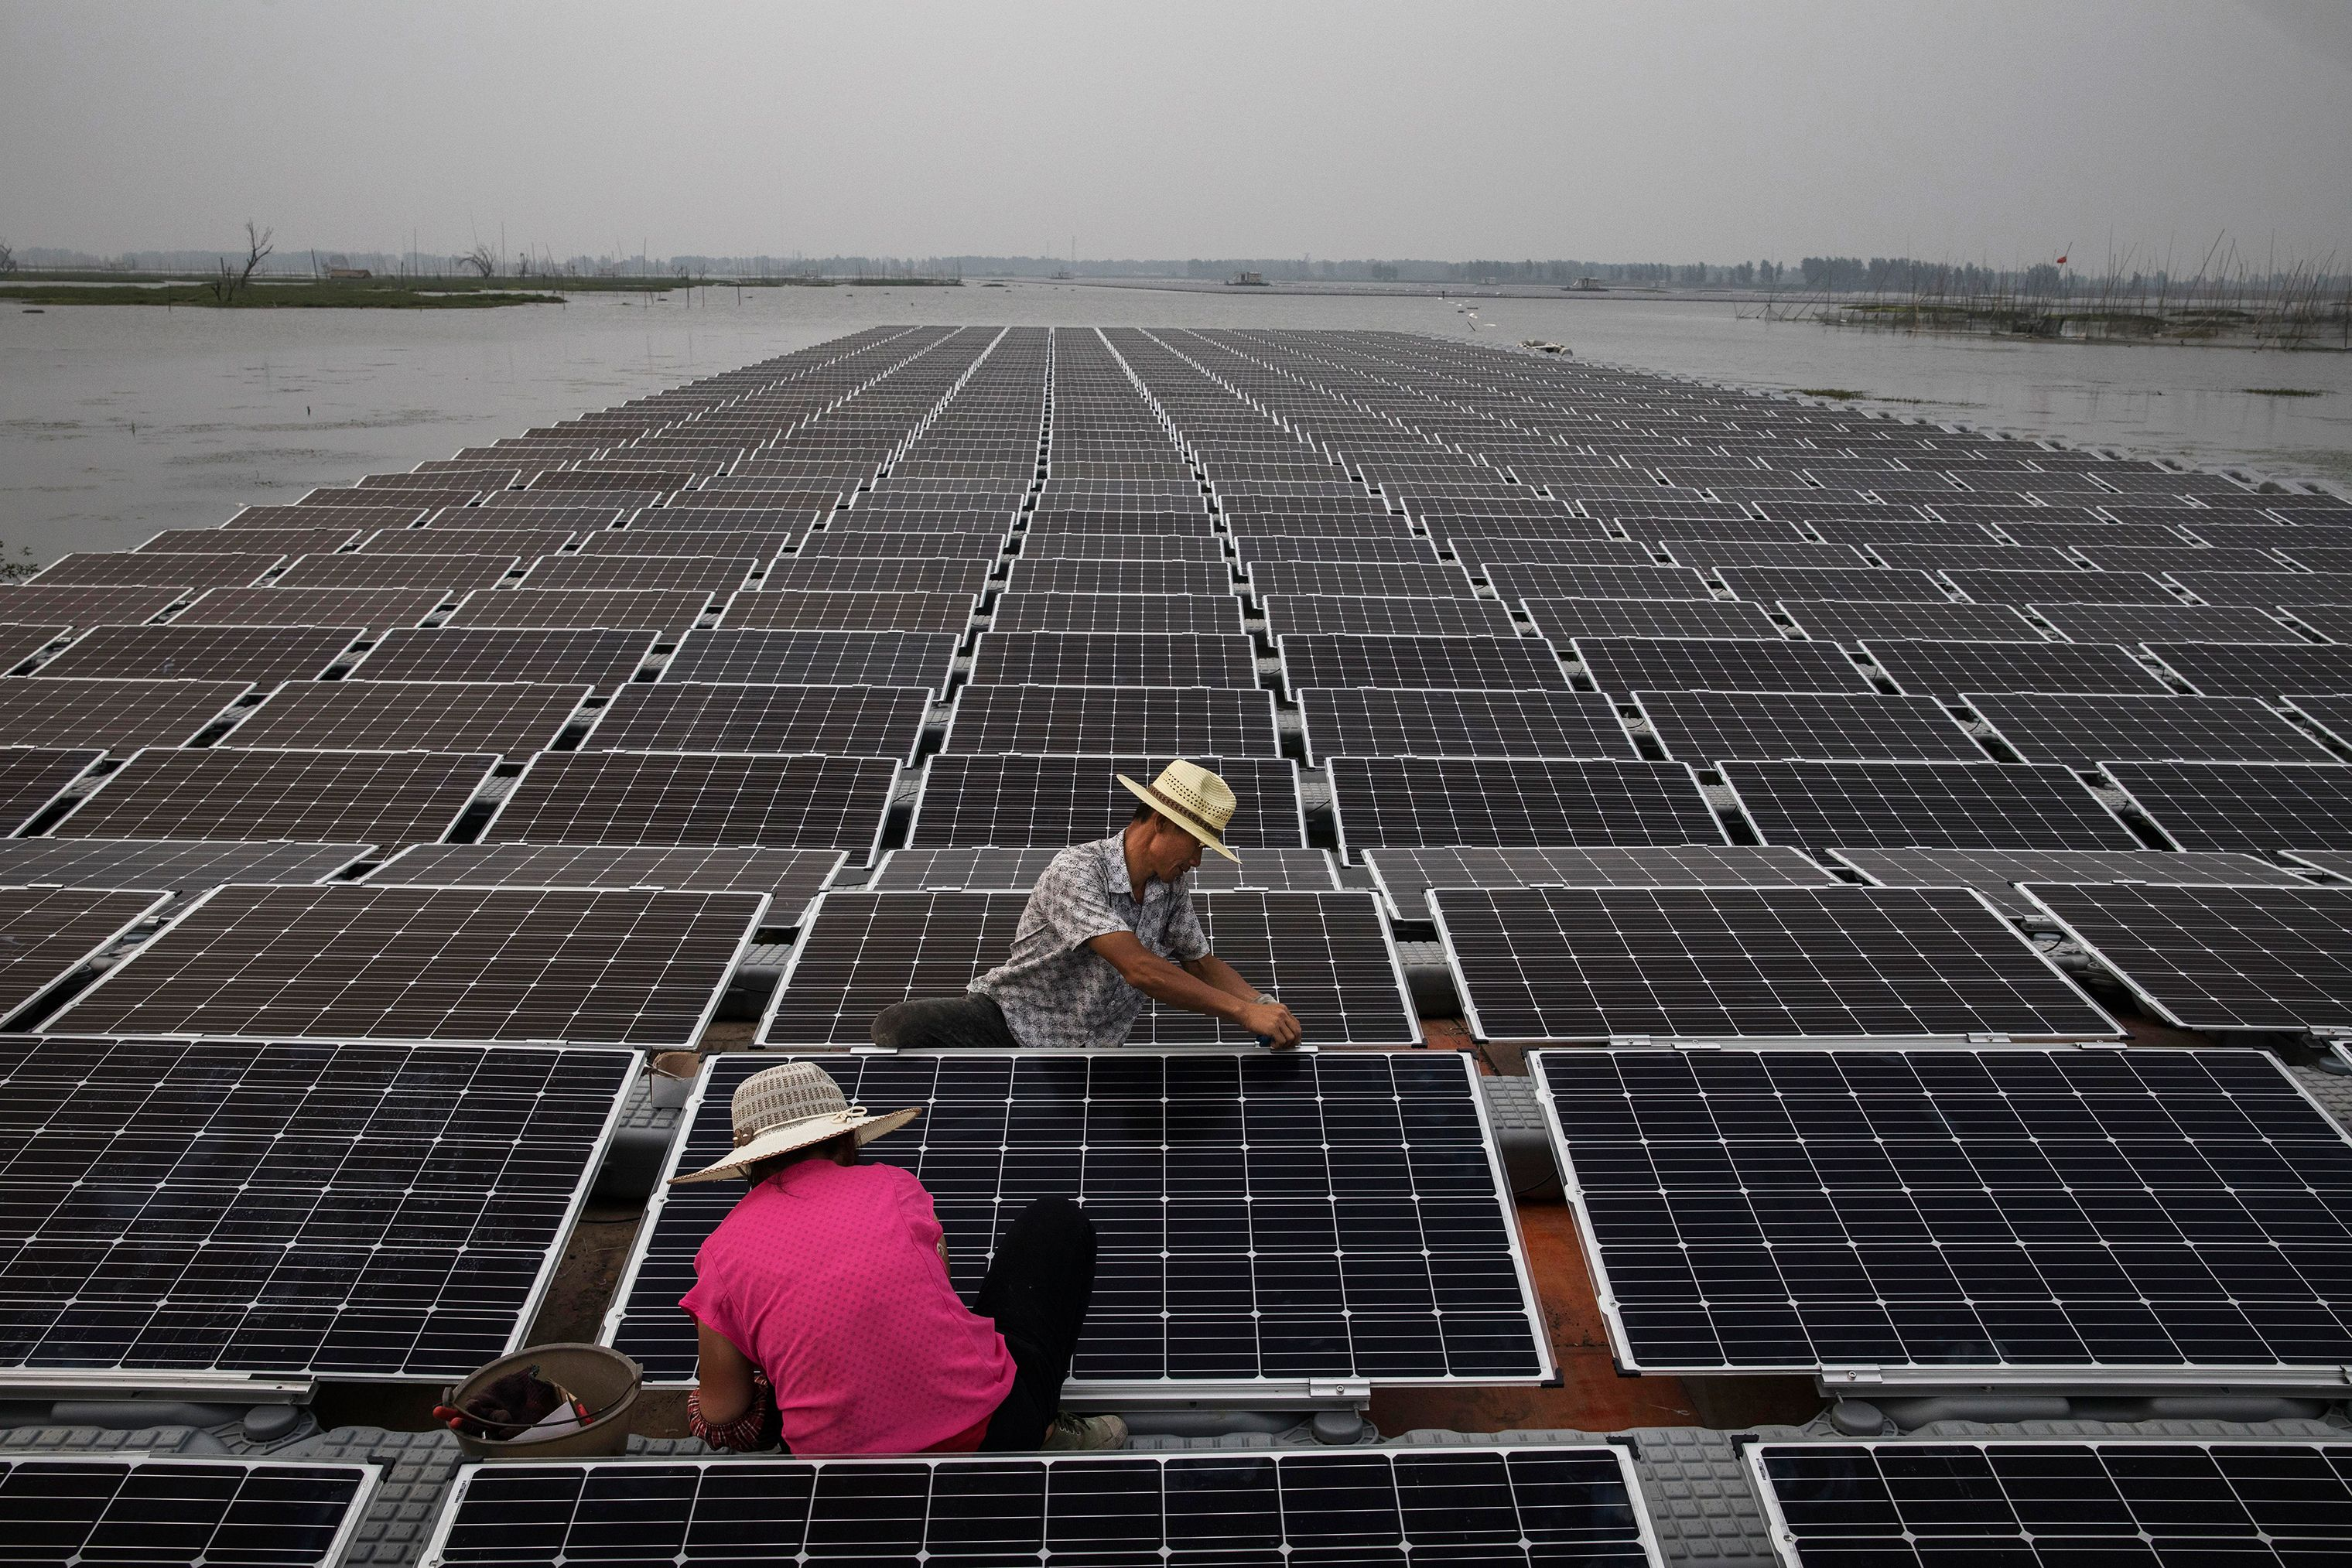 China Builds The World S Largest Floating Solar Farm Solar Farm Solar Panels Solar